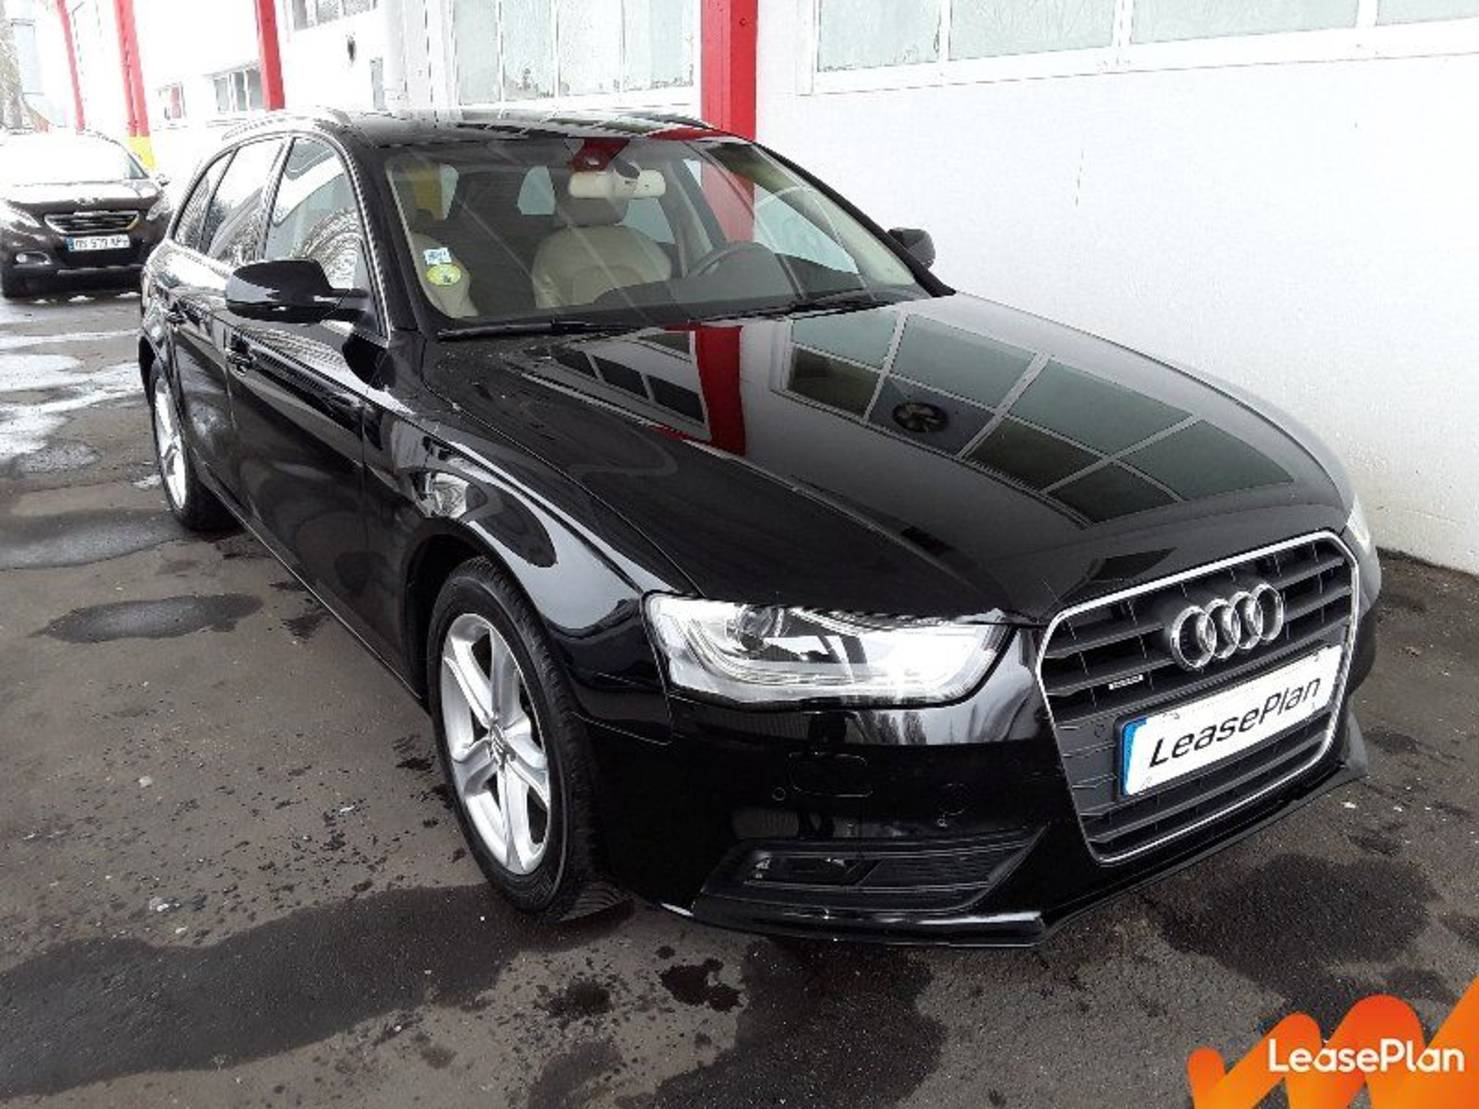 Audi A4 2.0 TDI 177 Quattro, Ambition Luxe S Tronic A detail1